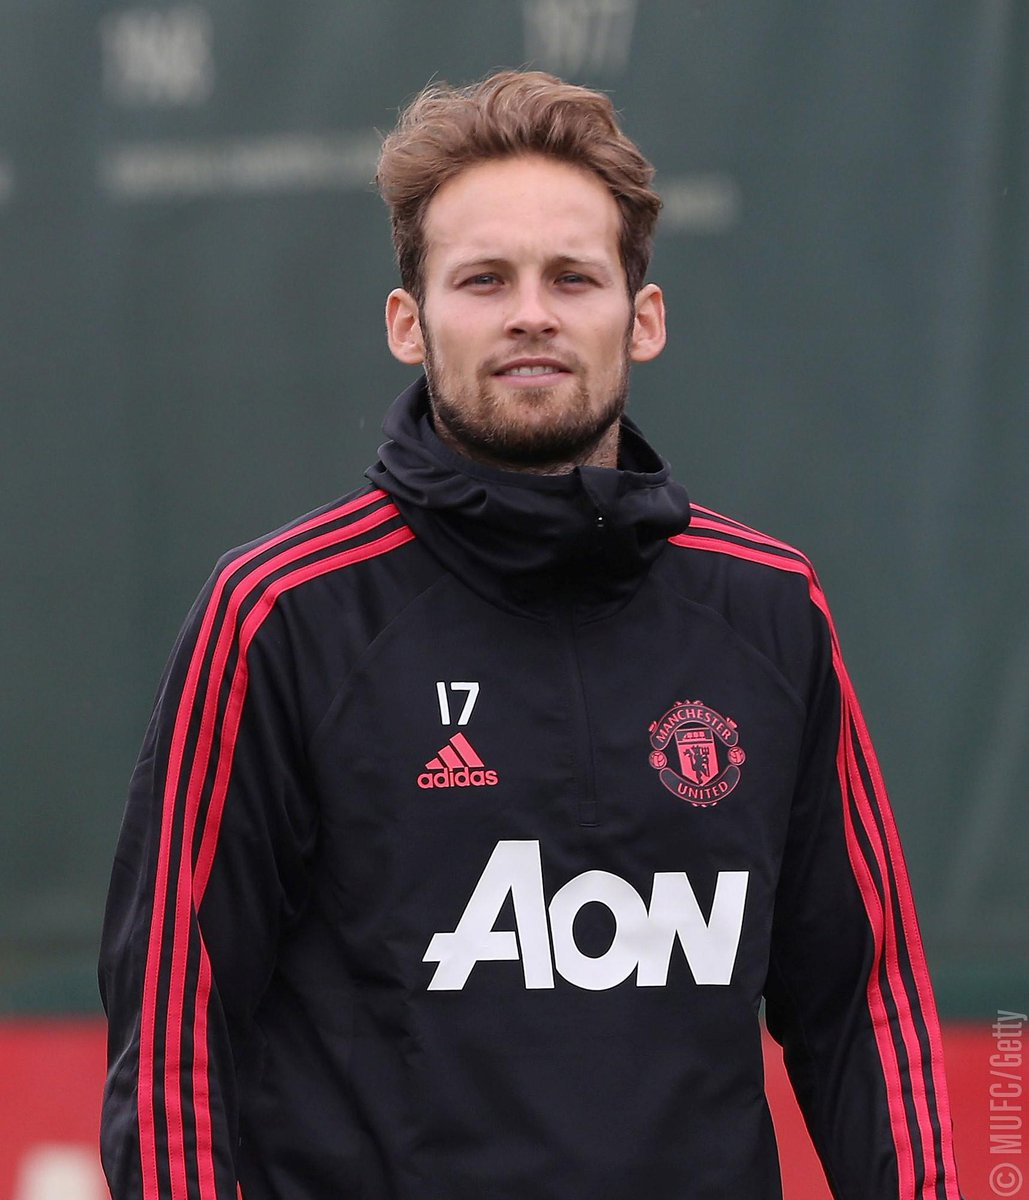 Manchester United's photo on Daley Blind